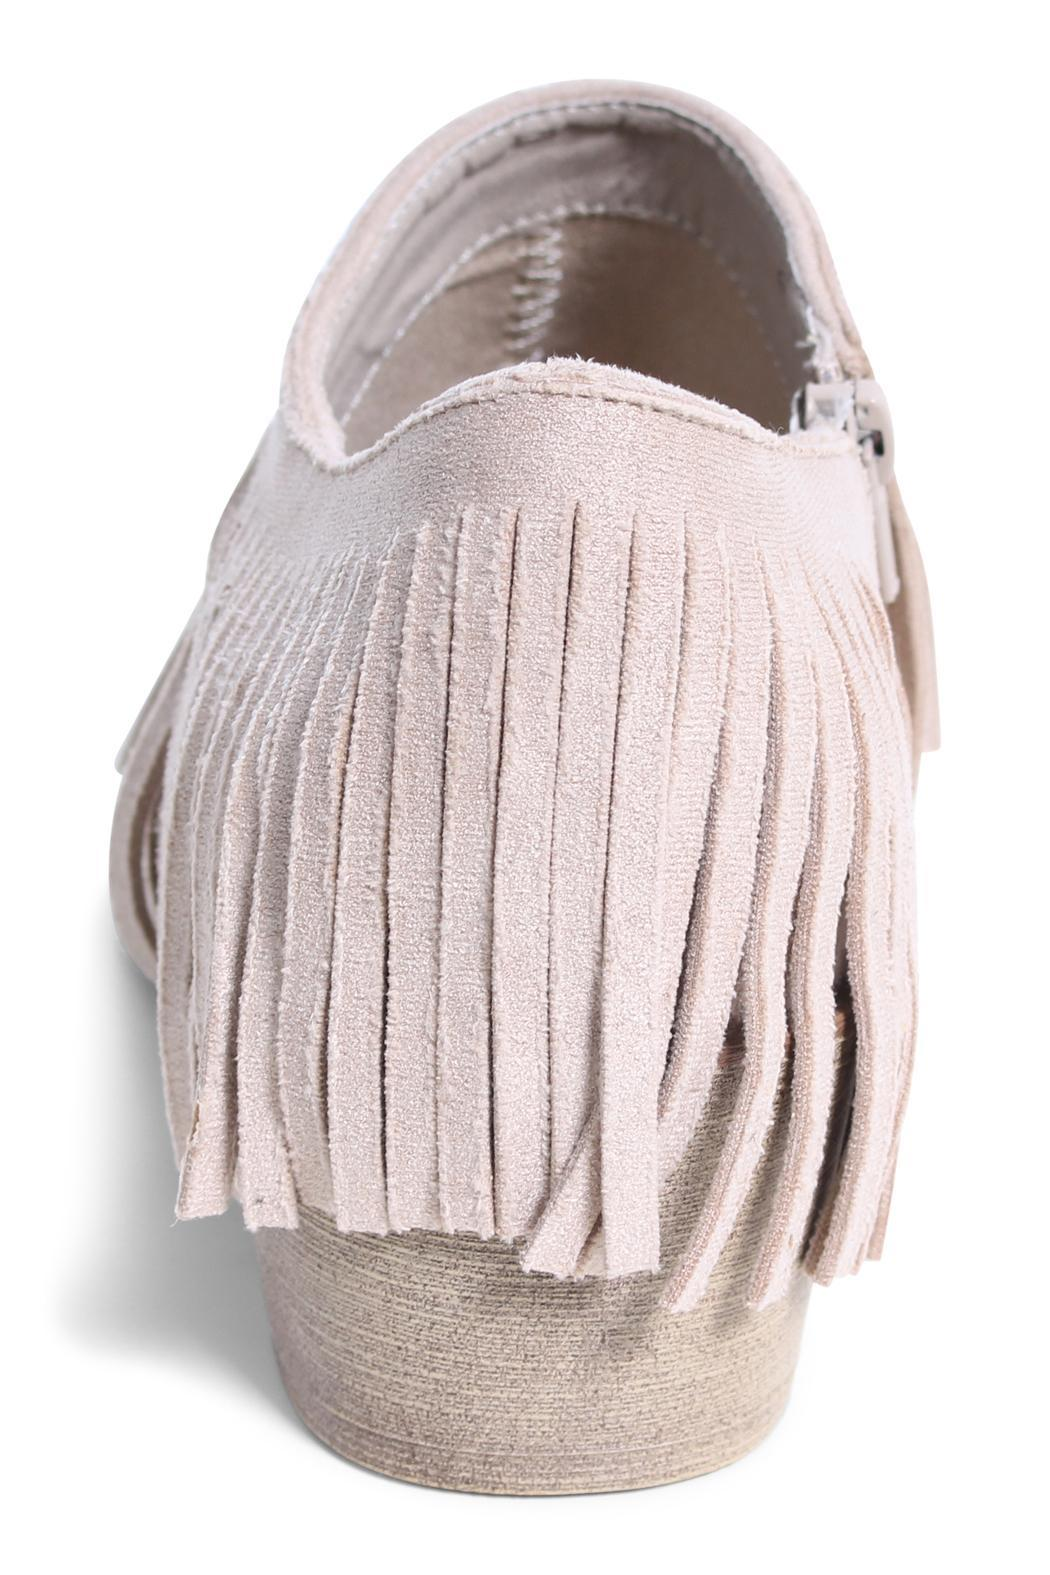 Coconuts by Matisse Fringe Shoe Bootie - Front Full Image